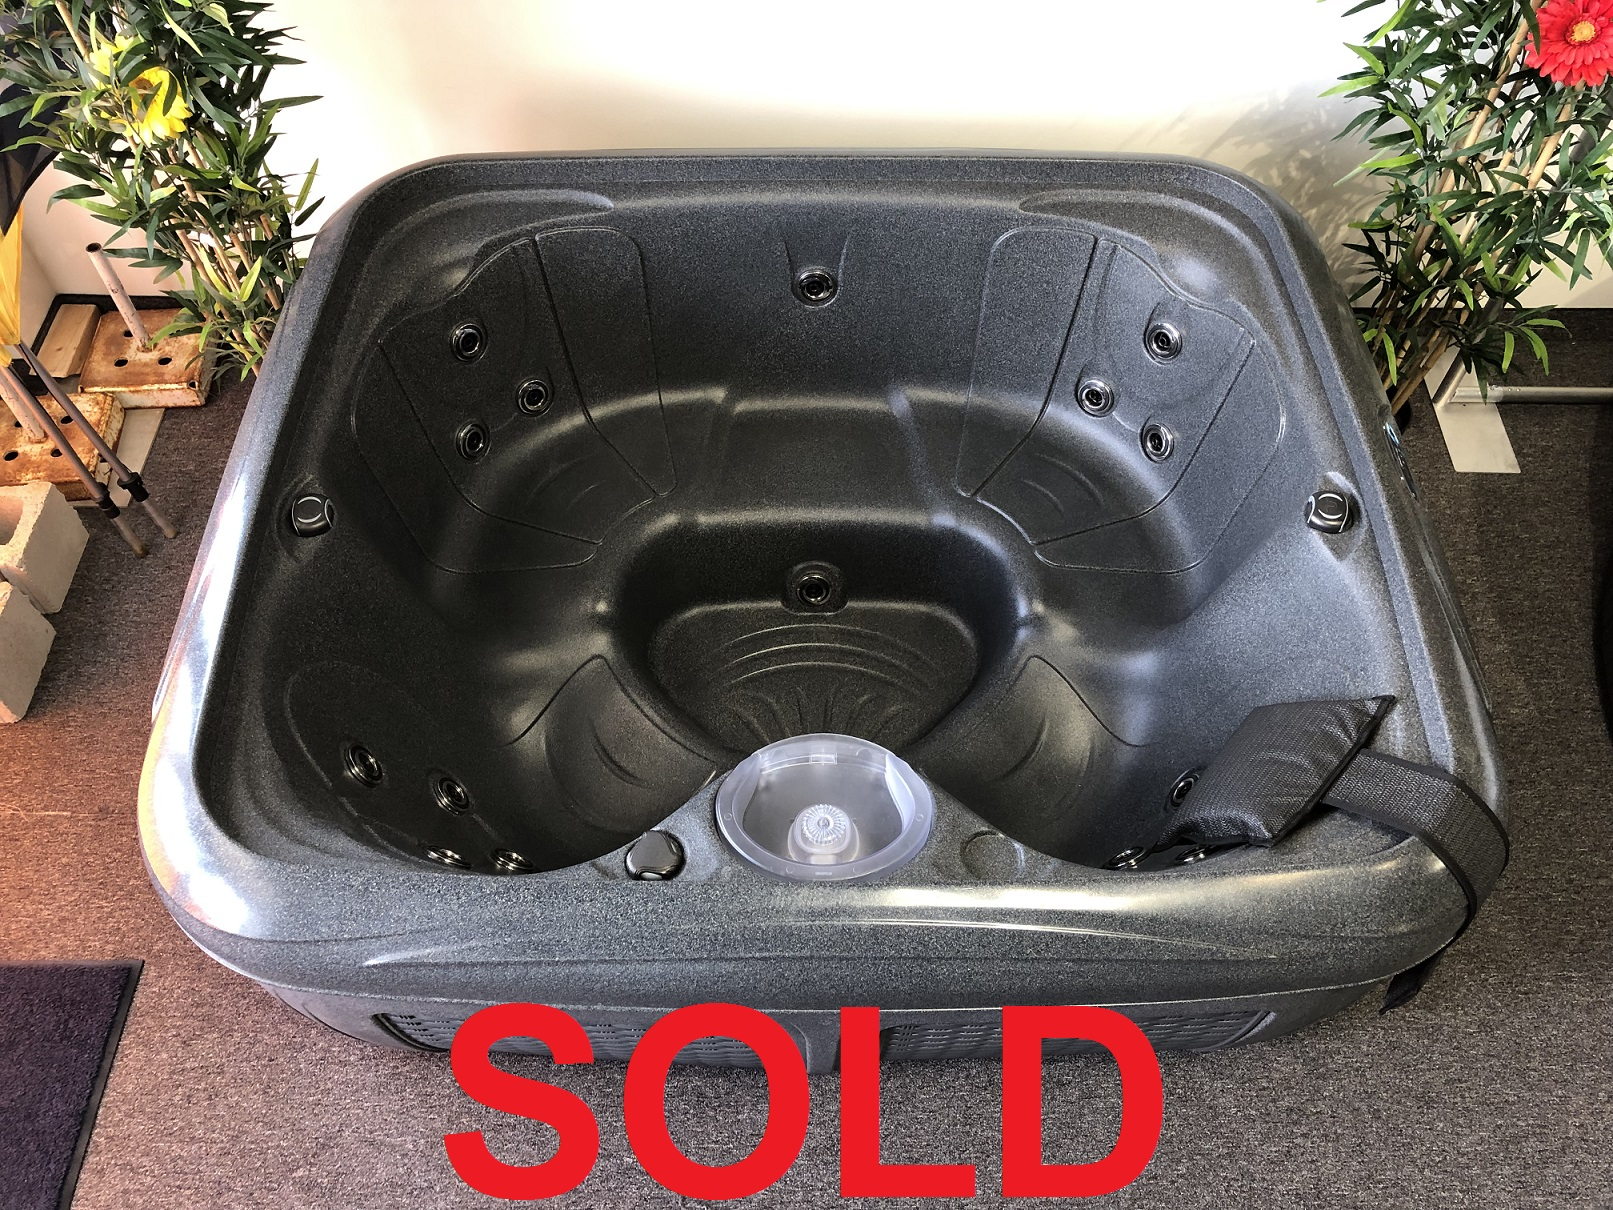 Dreammaker EZ spa portable hot tub plug n play store hot tubs spas near me Vaughan Ontario